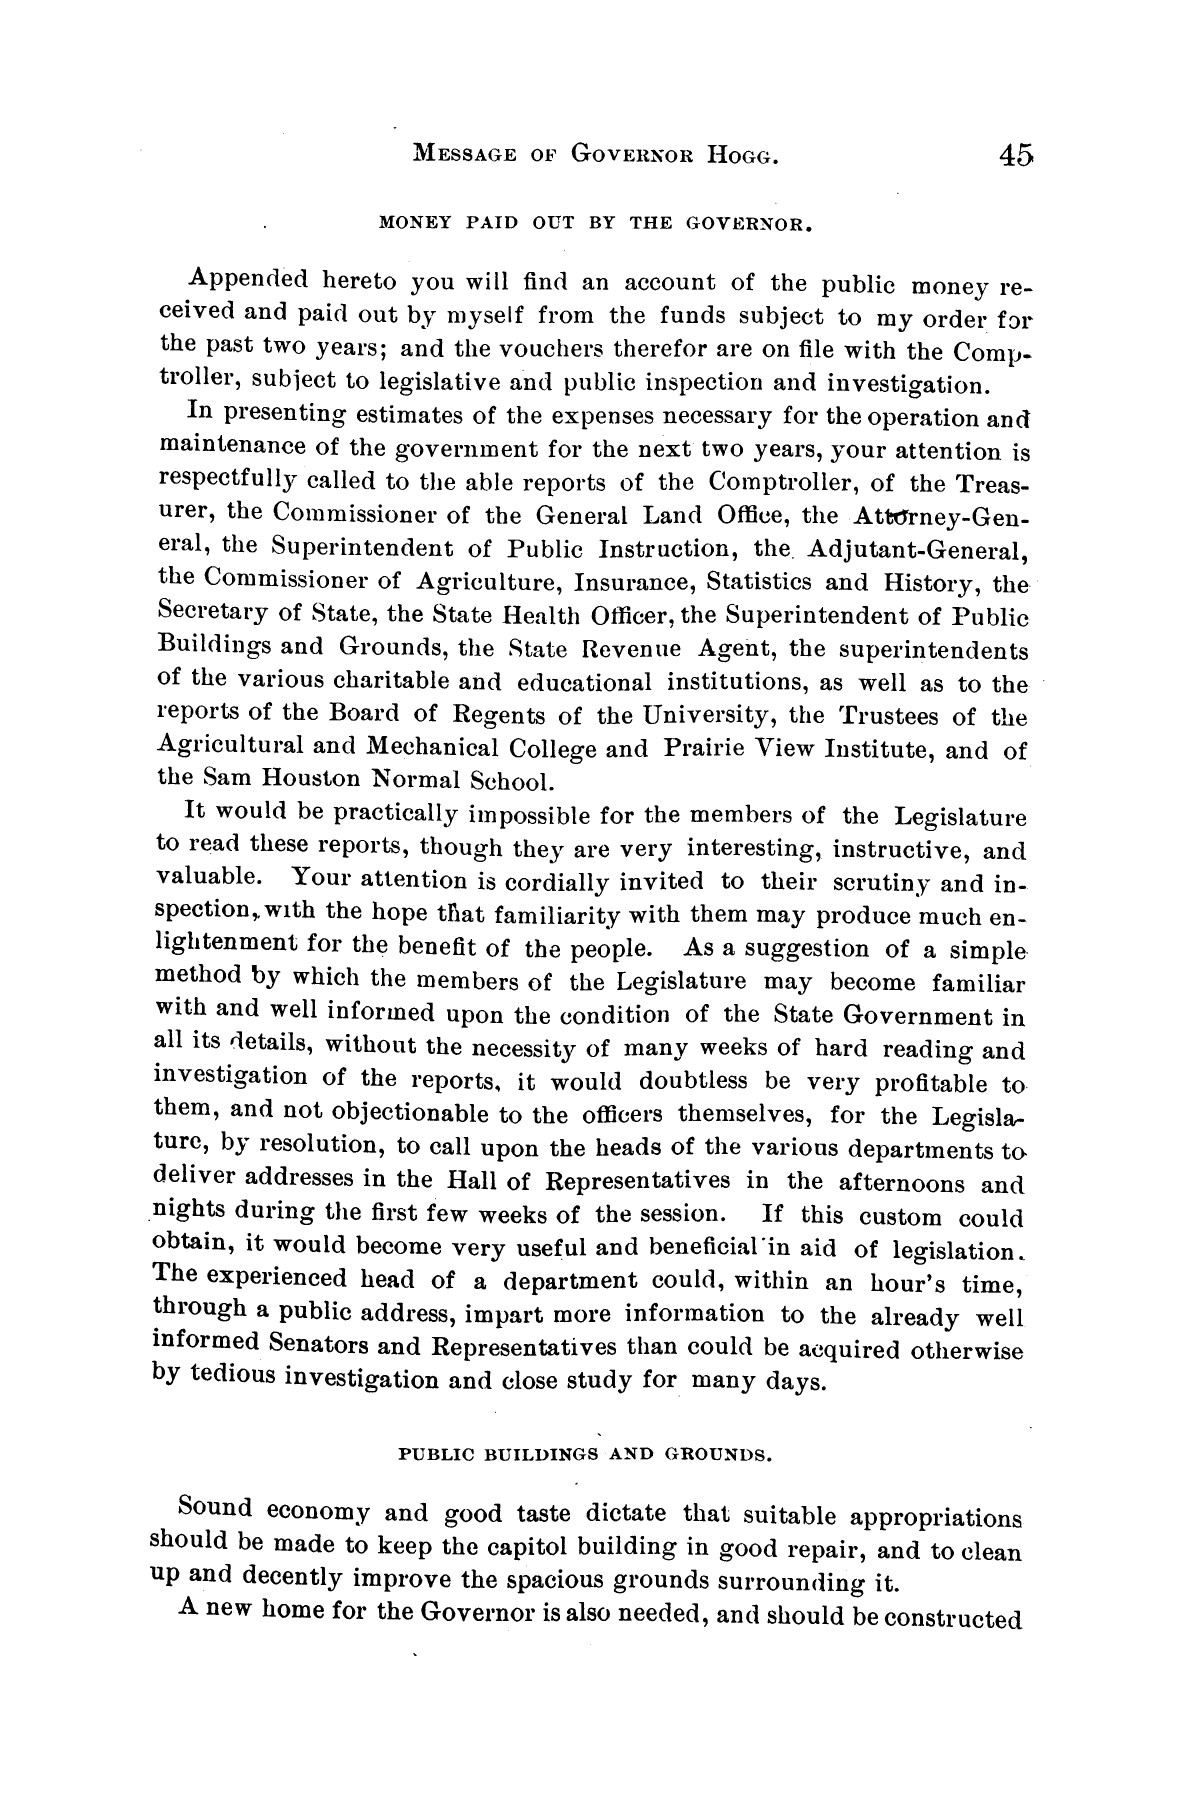 Message of Governor James S. Hogg to the twenty-fourth legislature of Texas                                                                                                      [Sequence #]: 45 of 48